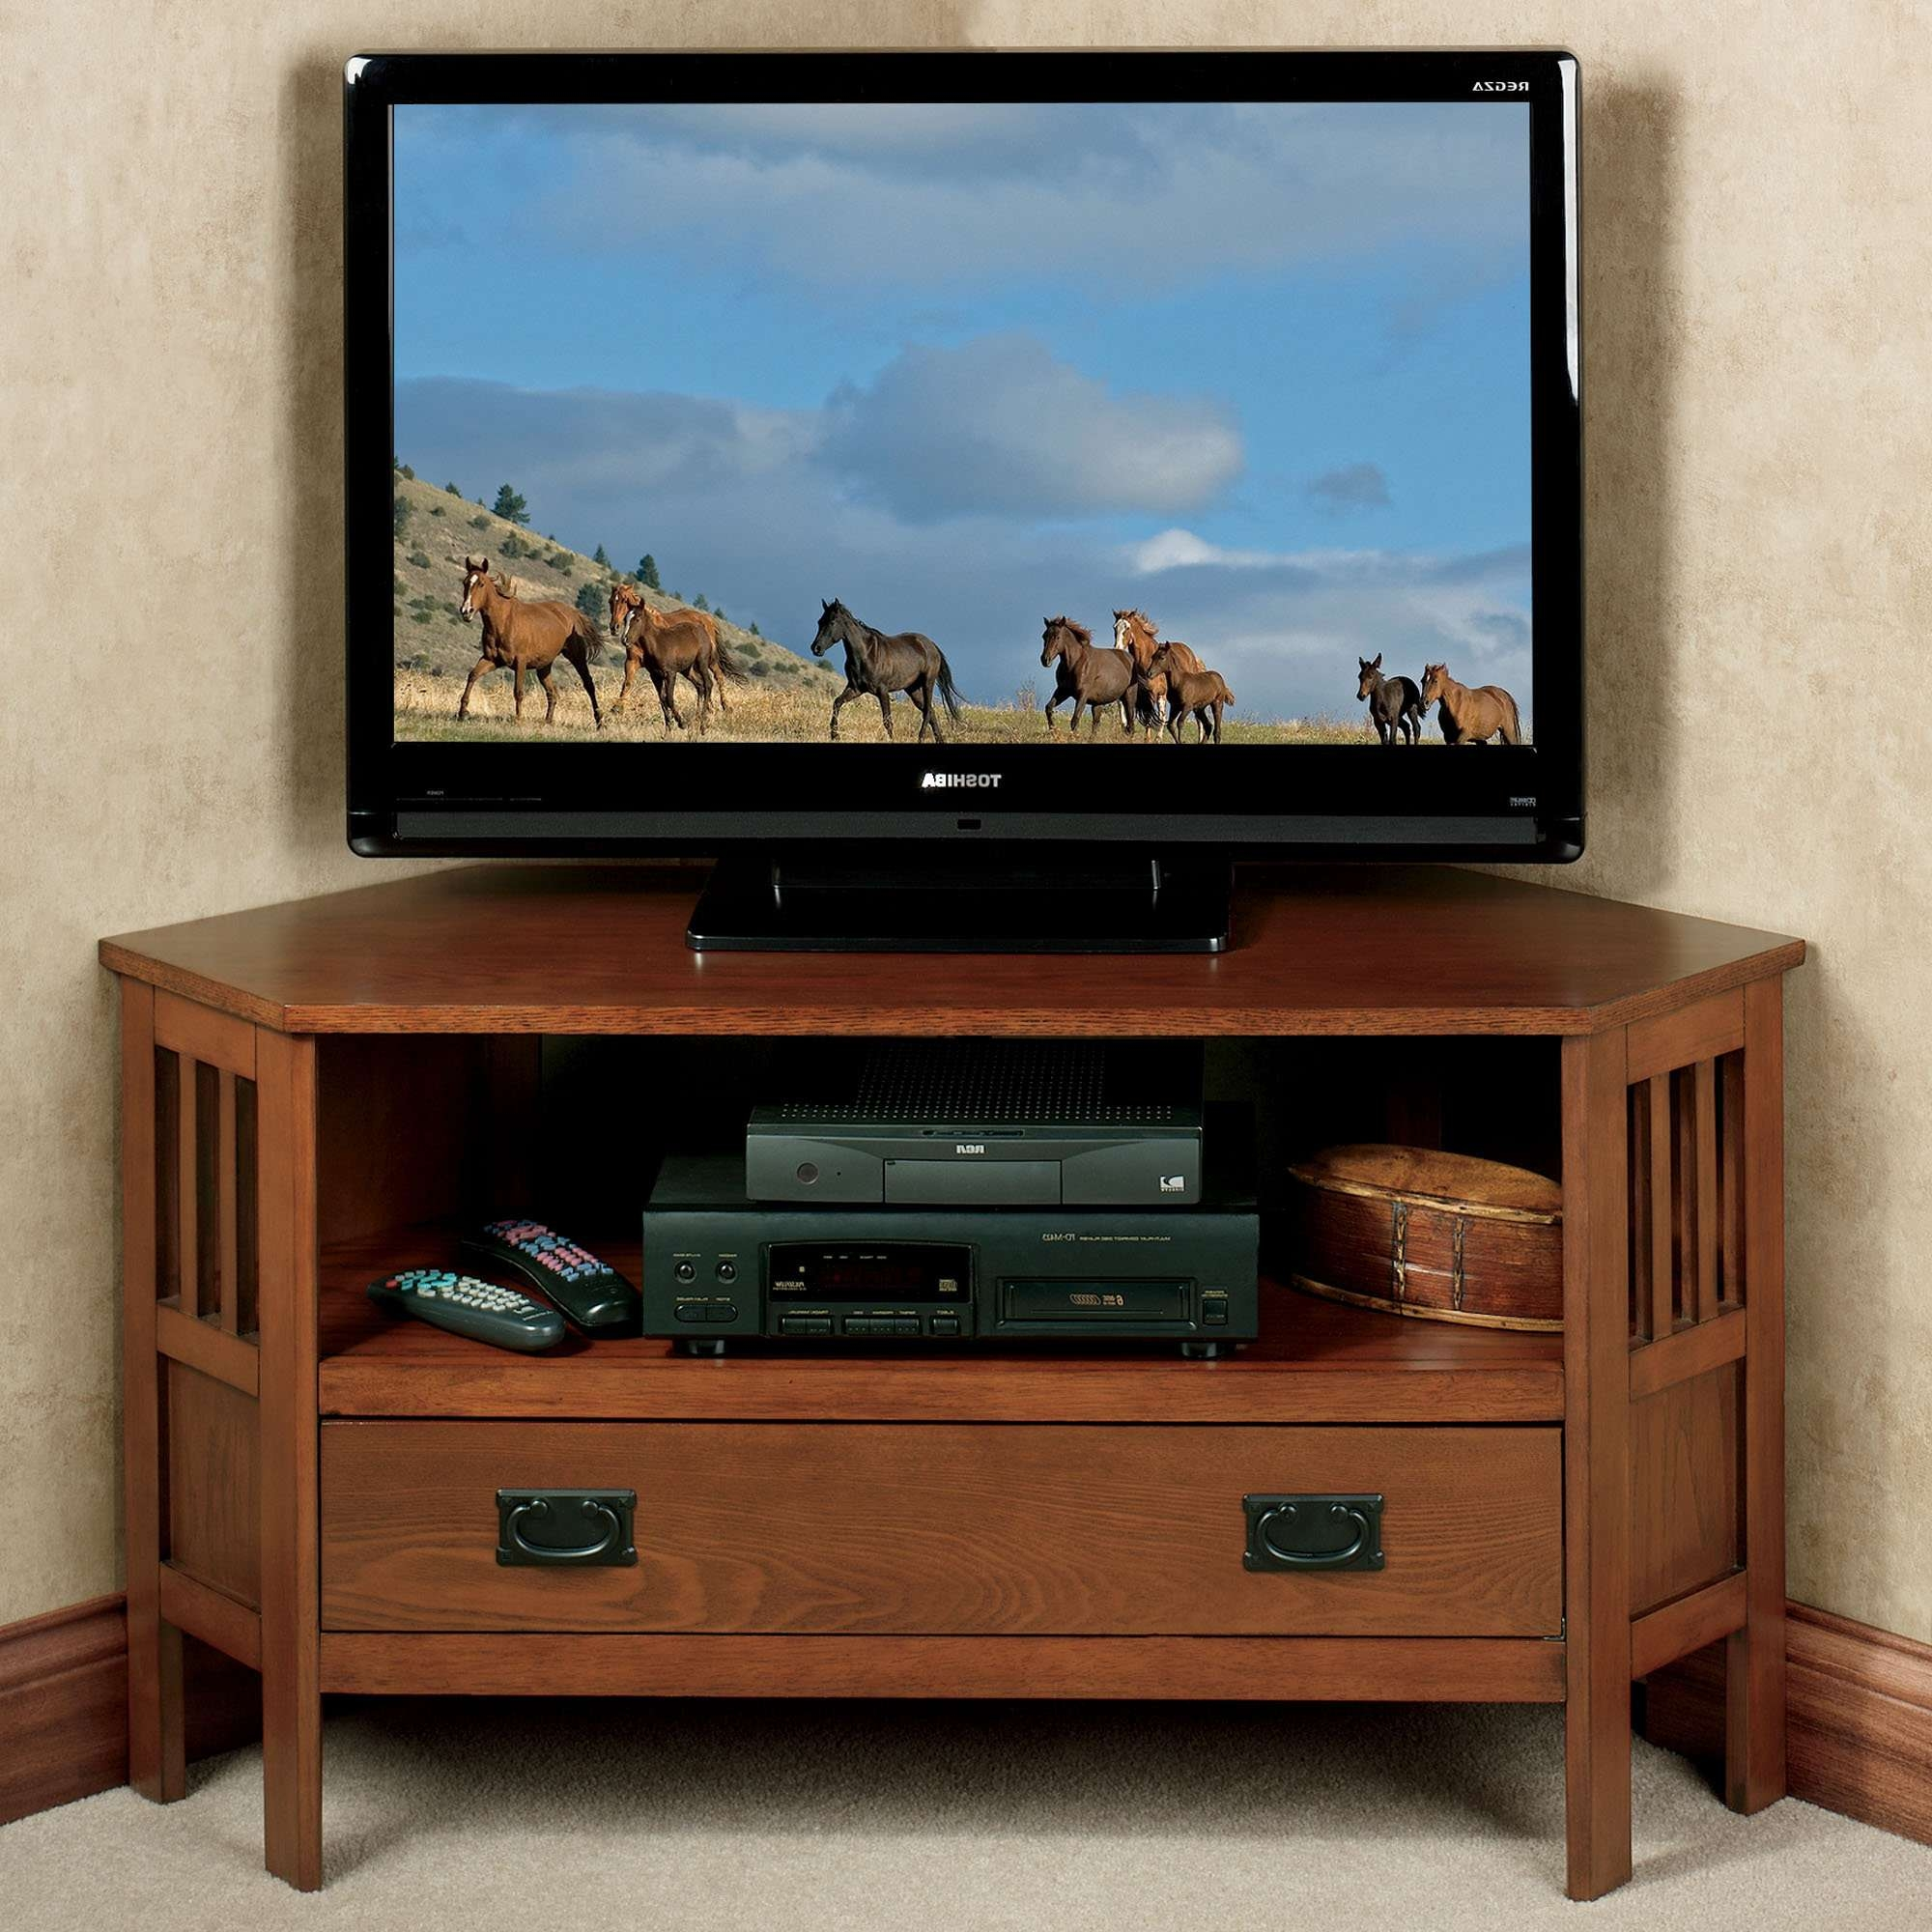 Fresh Corner Tv Stand For 55 Inch Flat Screen 78 With Additional Throughout 55 Inch Corner Tv Stands (View 6 of 20)